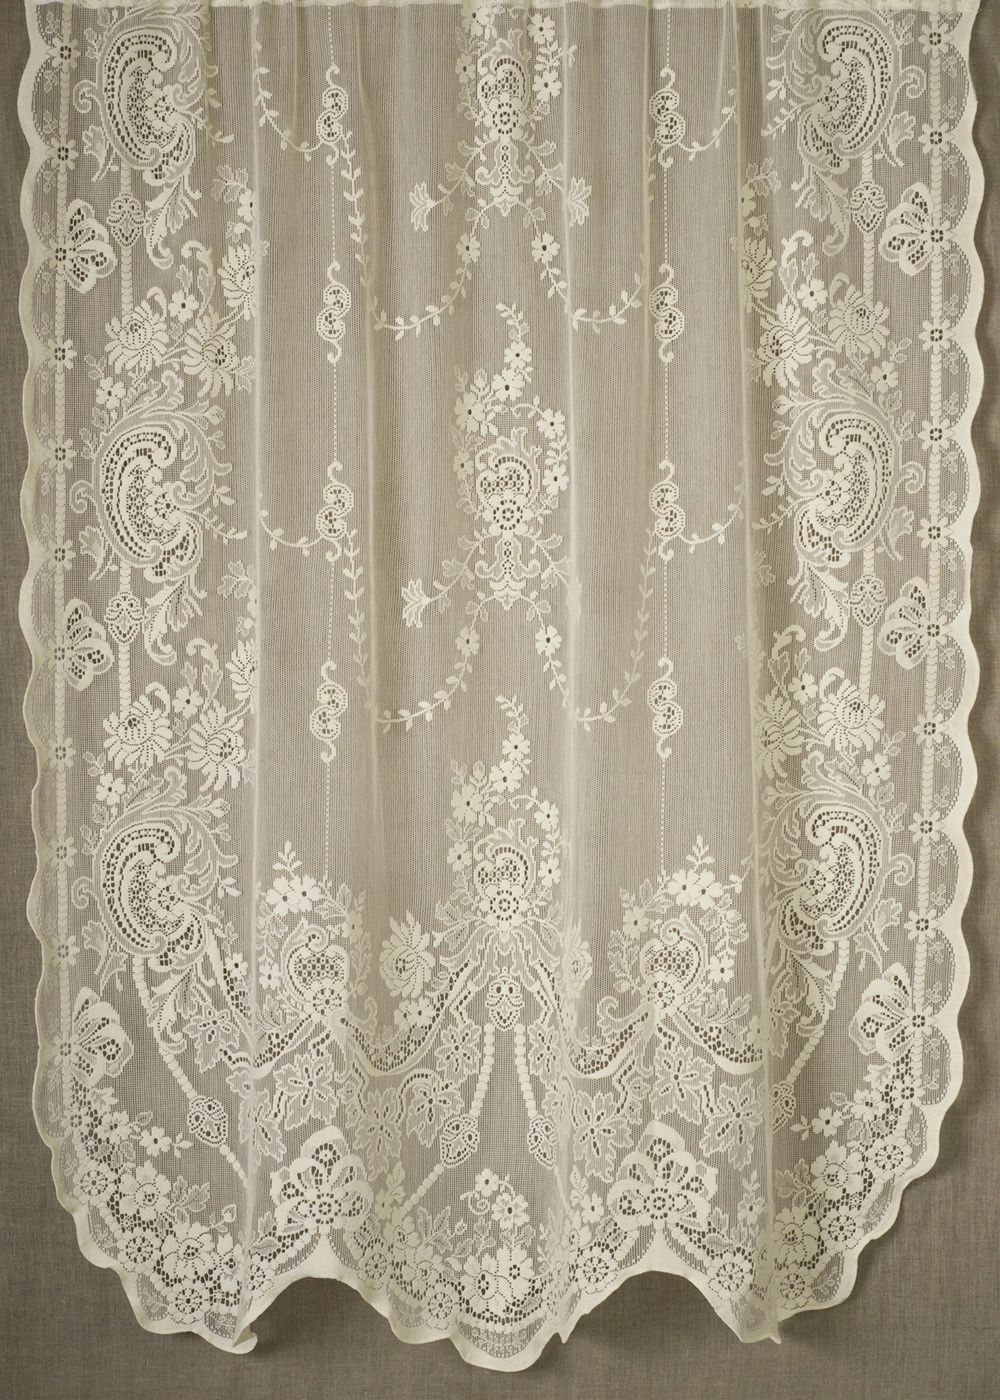 Rachel Nottingham Lace Curtain Direct From London Lace